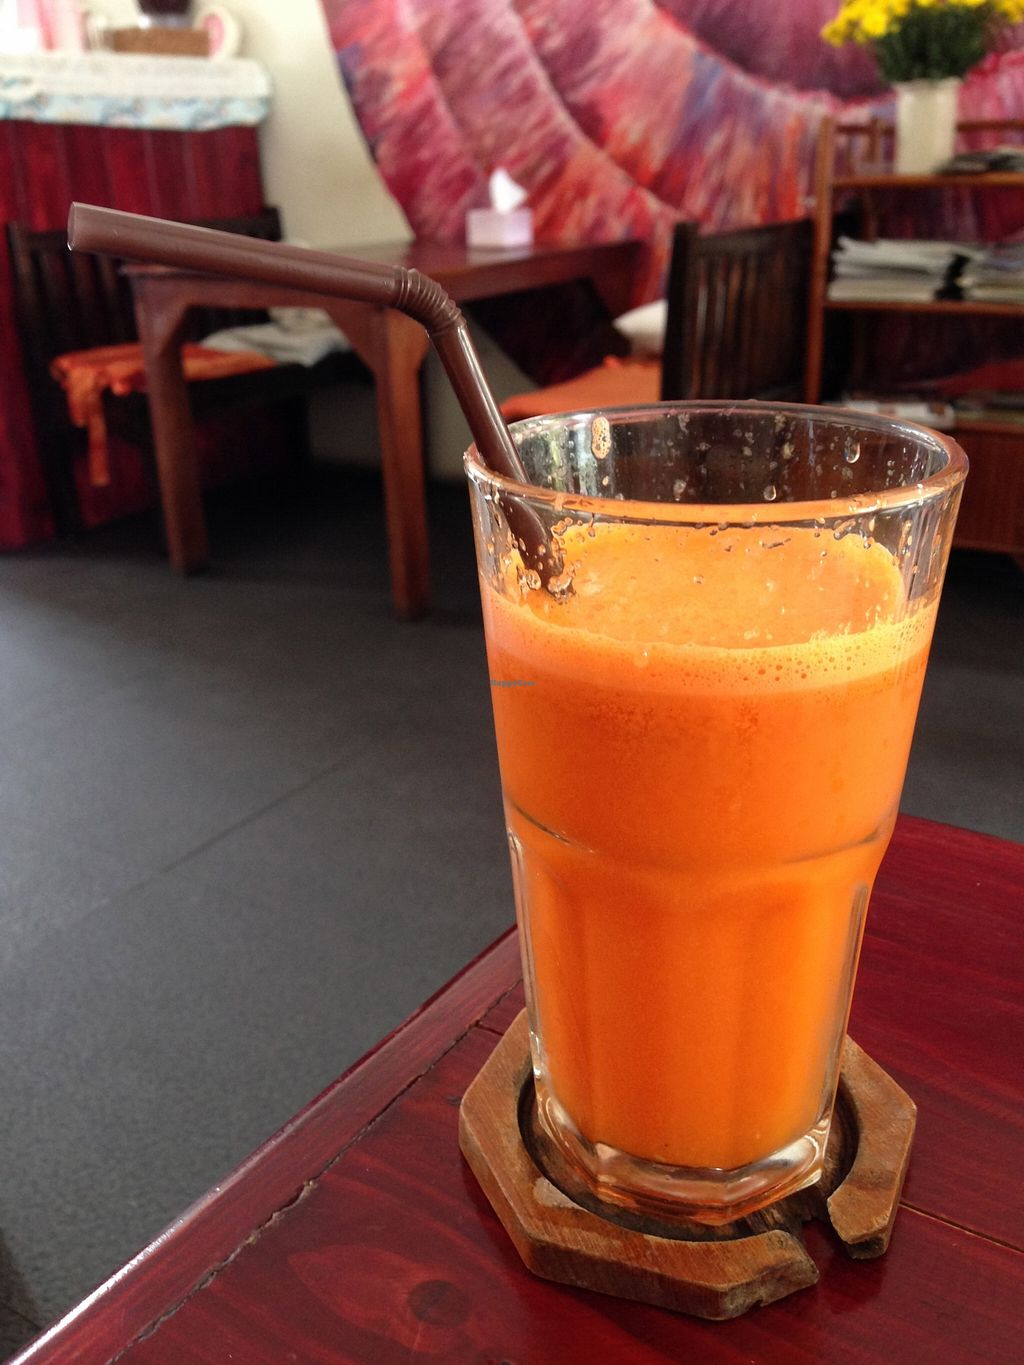 "Photo of CLOSED: Beetroot Stories Cafe  by <a href=""/members/profile/Pamina"">Pamina</a> <br/>Fruit juice @ Beetroot Stories Cafe, Chiang Mai <br/> December 26, 2015  - <a href='/contact/abuse/image/28282/129860'>Report</a>"